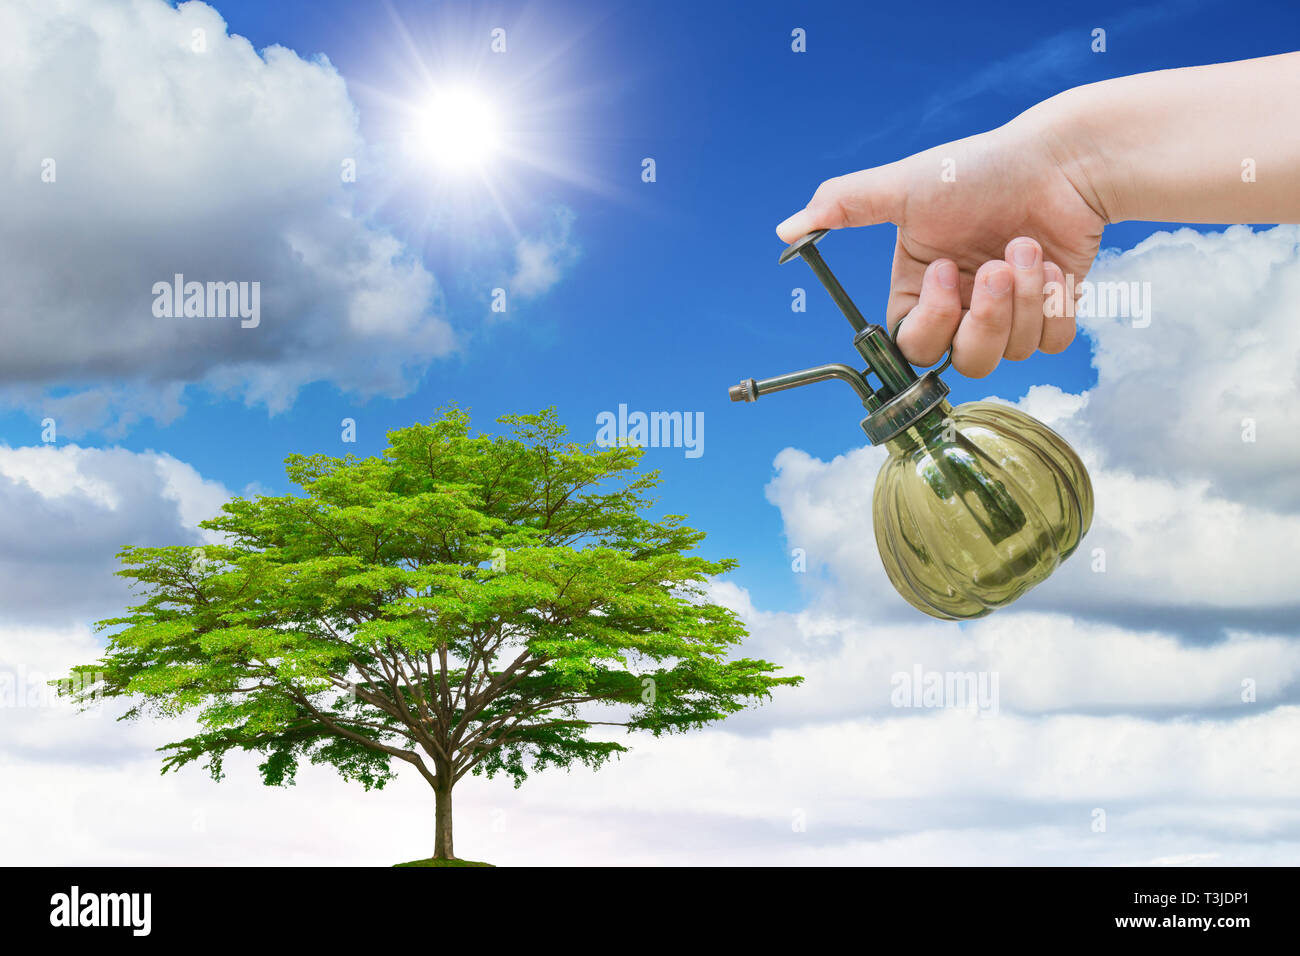 plant the tree concept earth day, hand watering spray green tree with blue sky. - Stock Image